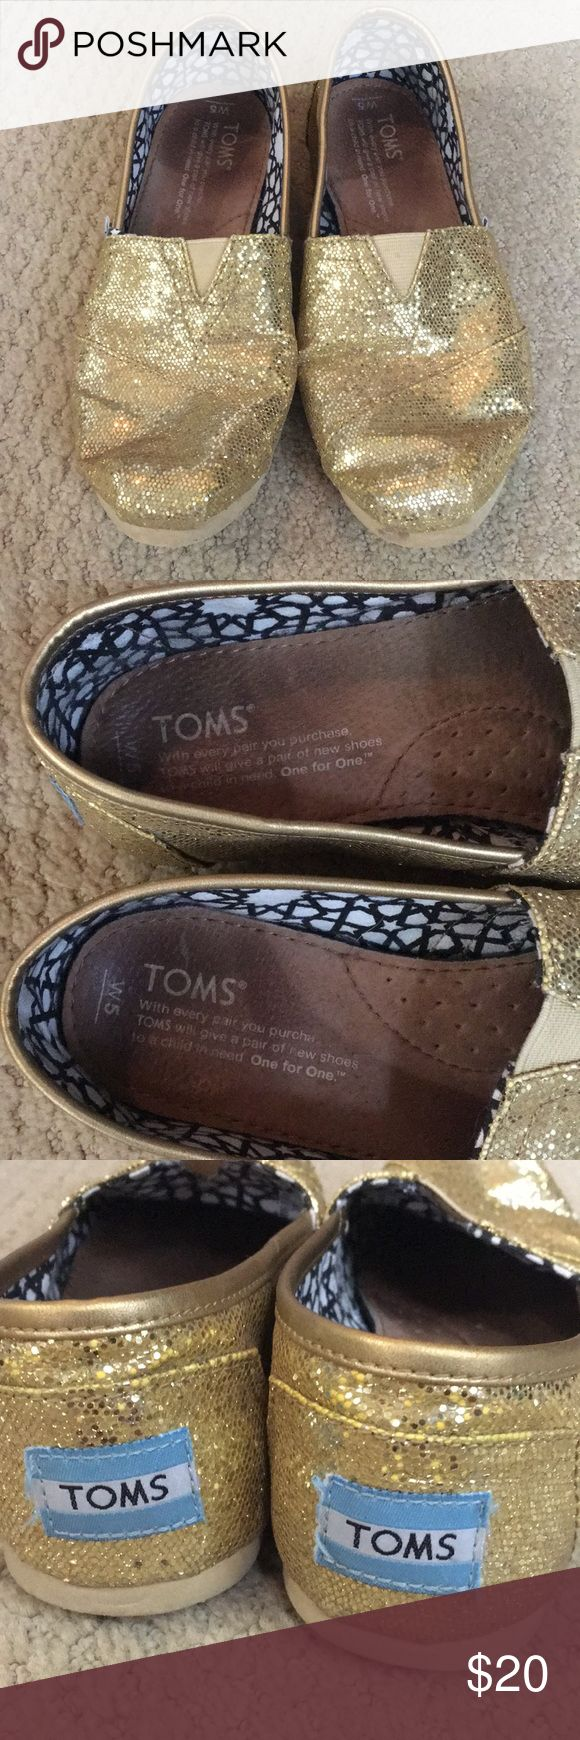 Gold Glitter TOMS-Size 5 Gold glitter TOMS. Size 5. Only worn a few times. Leather insoles, glitter is sparkley, and have never been worn without socks. In great condition. Toms Shoes Flats & Loafers